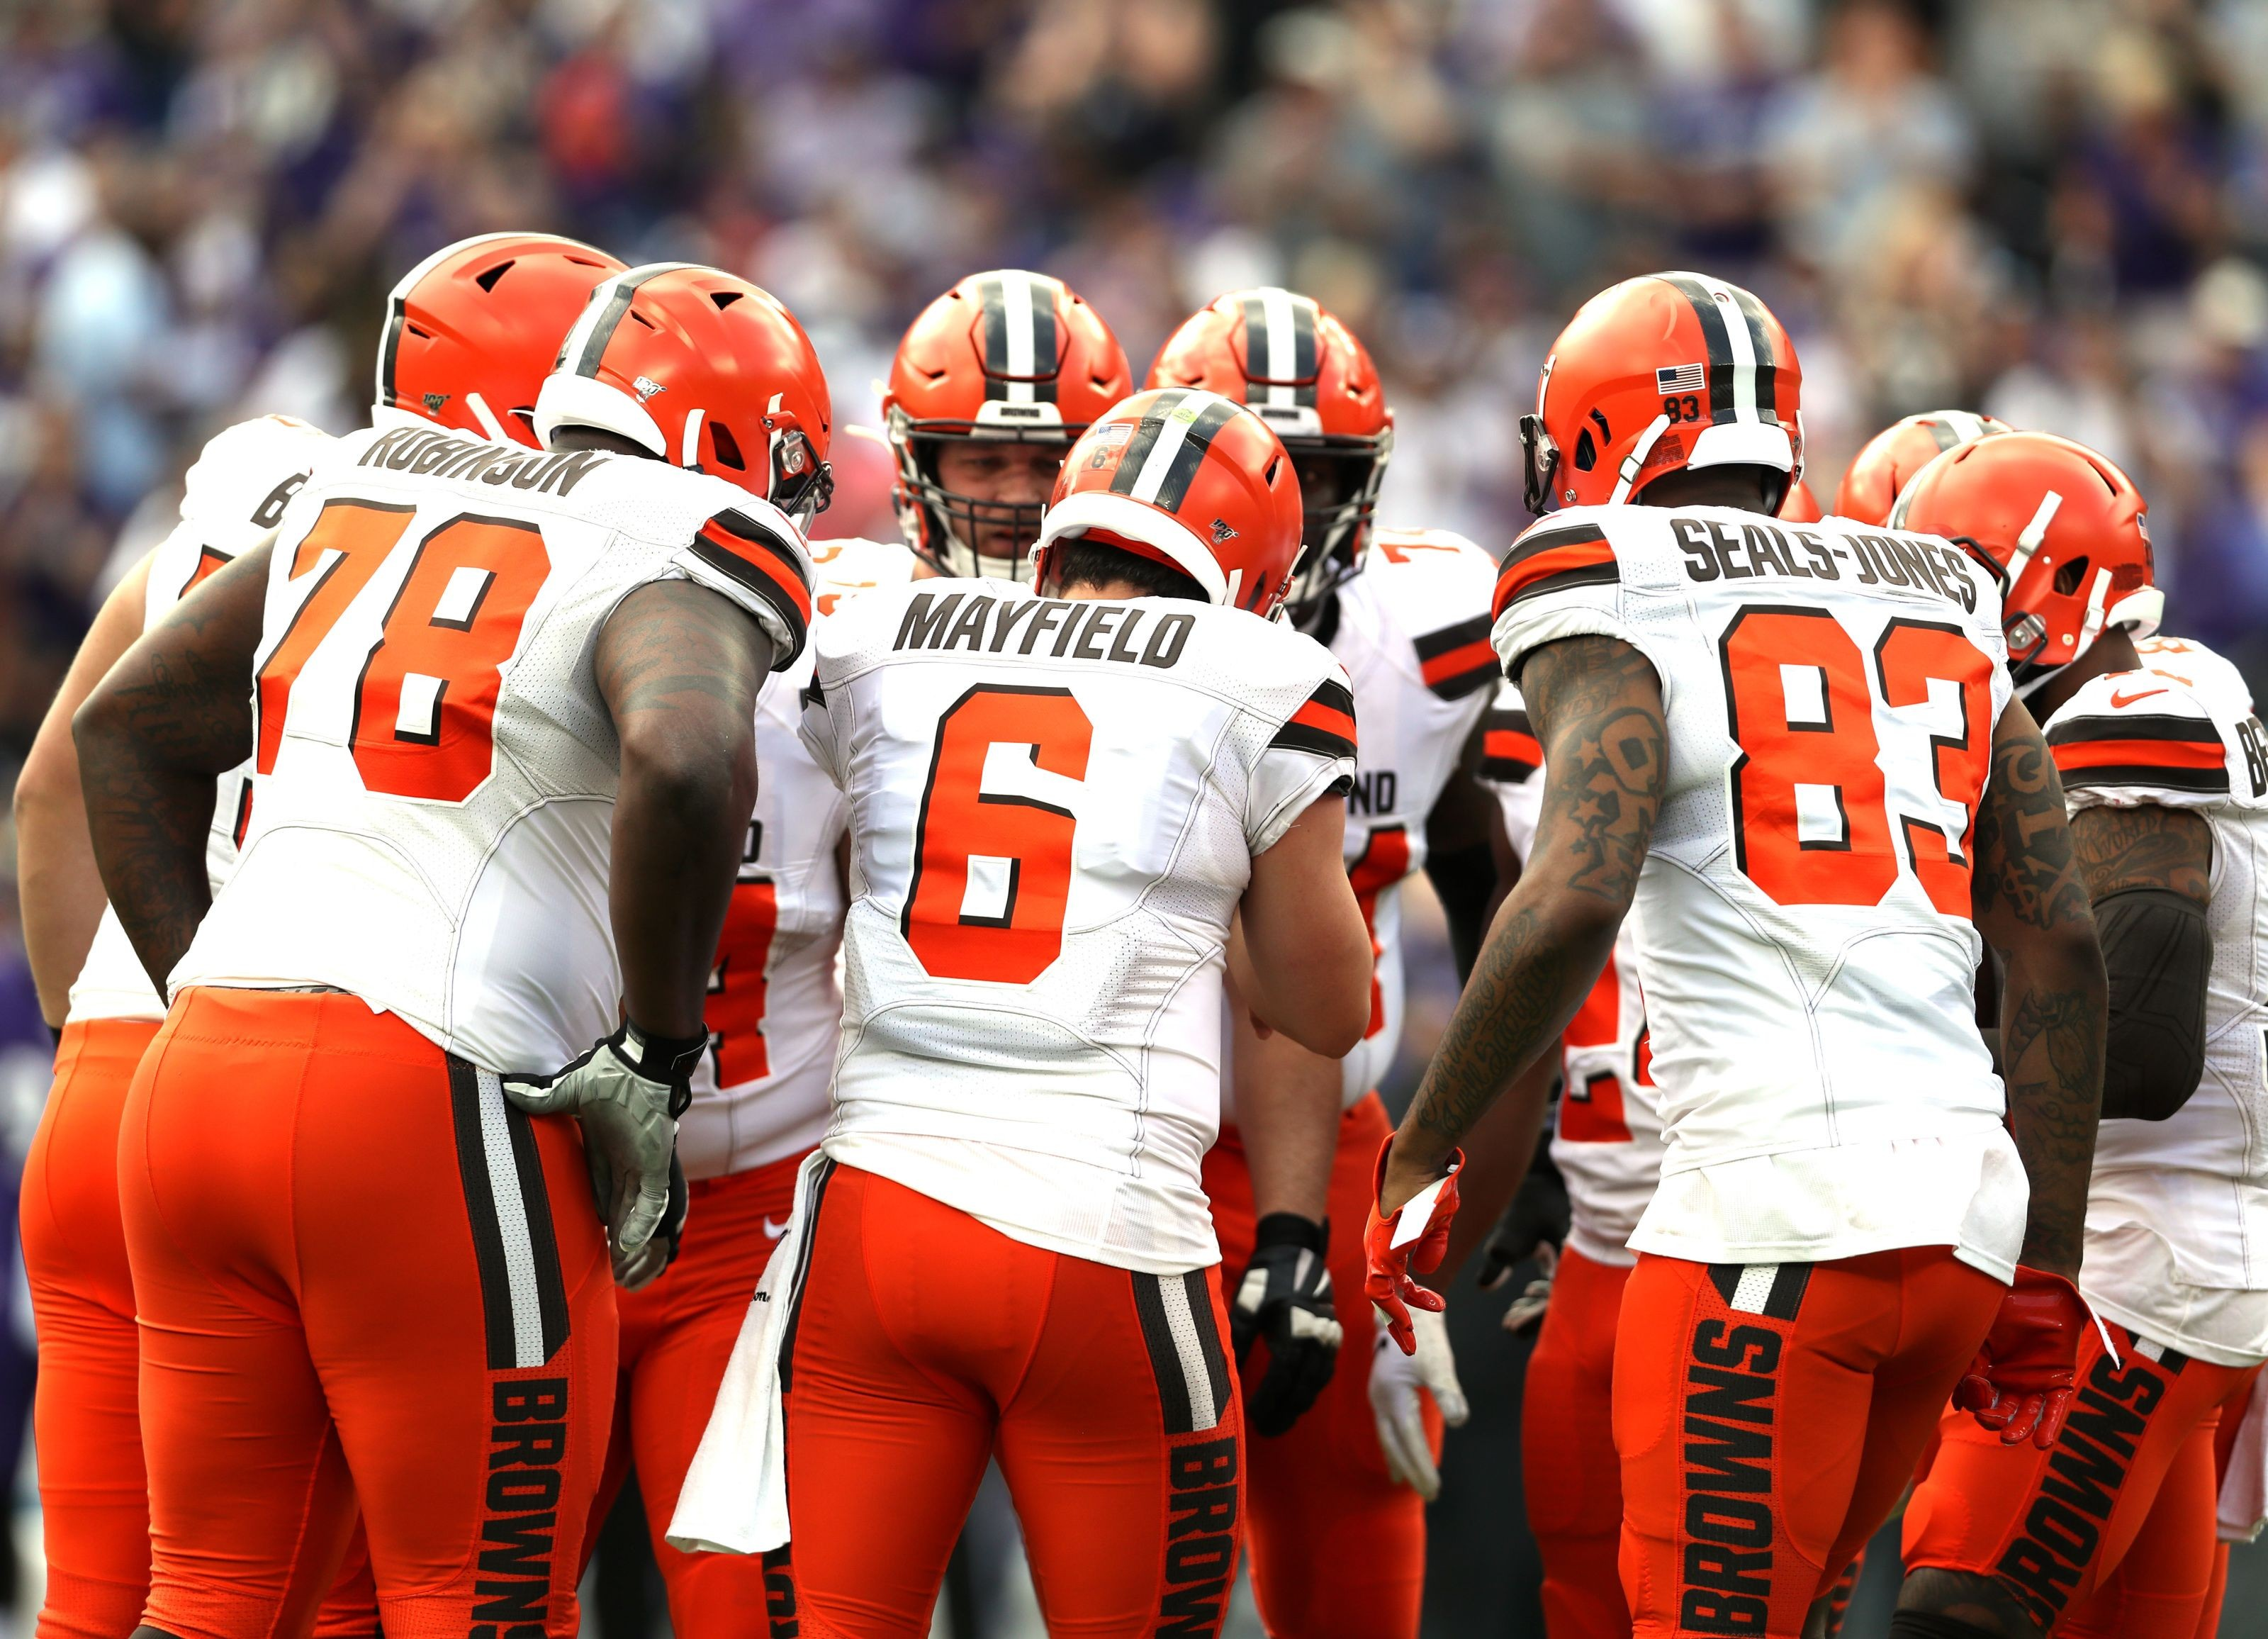 Browns unveil new uniforms with classic look - Sports